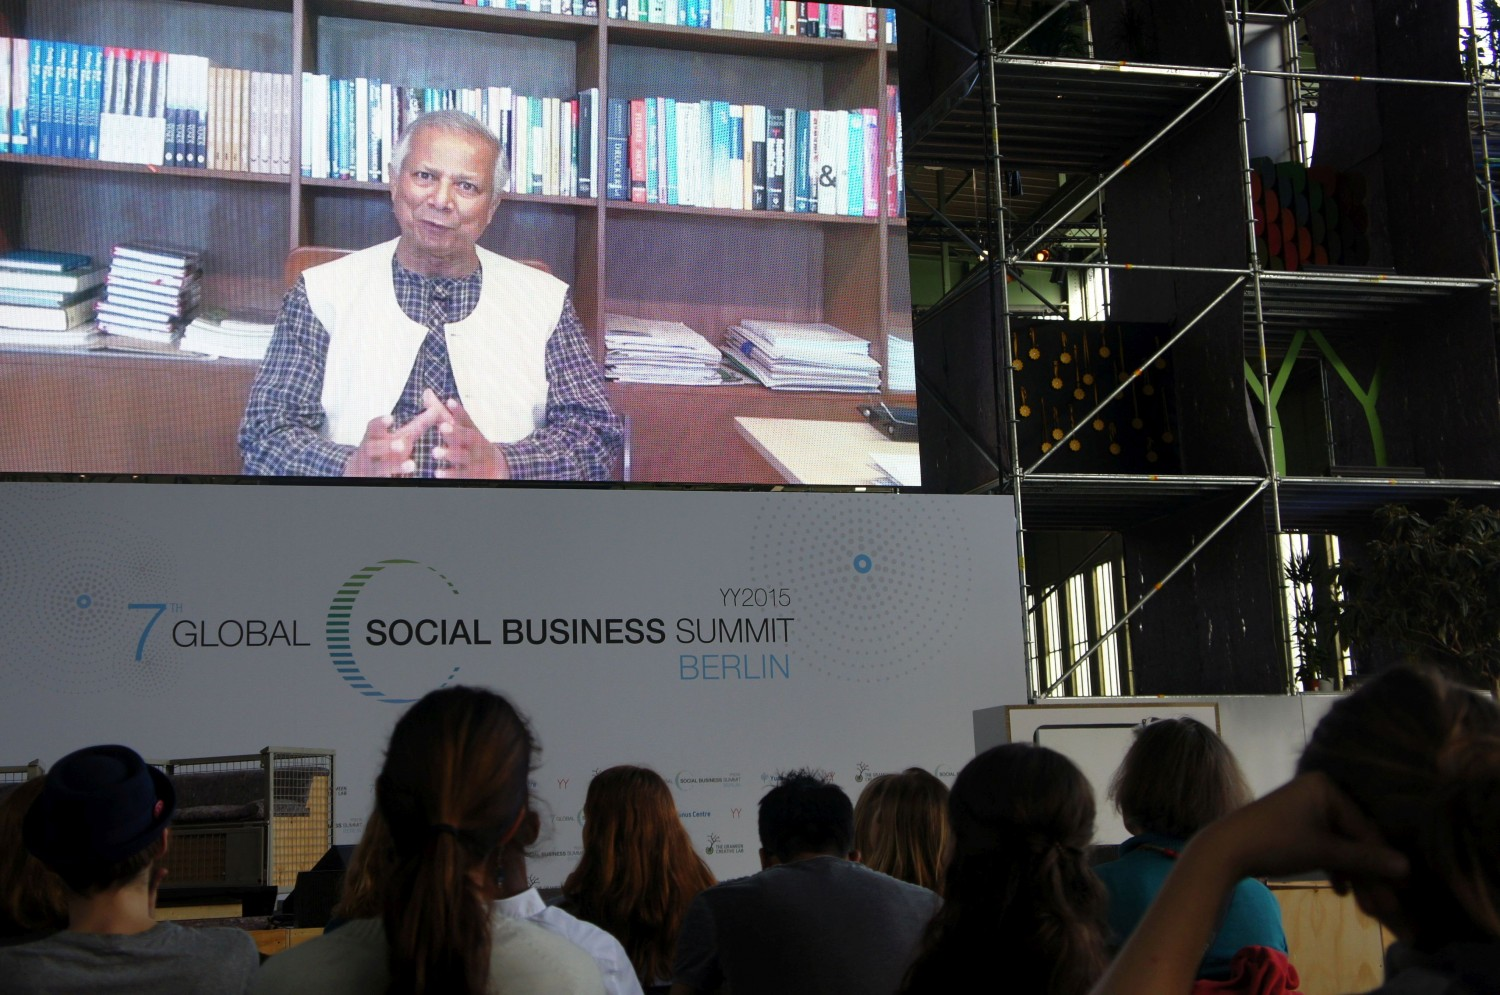 Nobel Peace Prize laureate Muhammud Yunus addresse Refugee Action Tank attendees at the Global Social Business Summit at Tempelhof Airport.